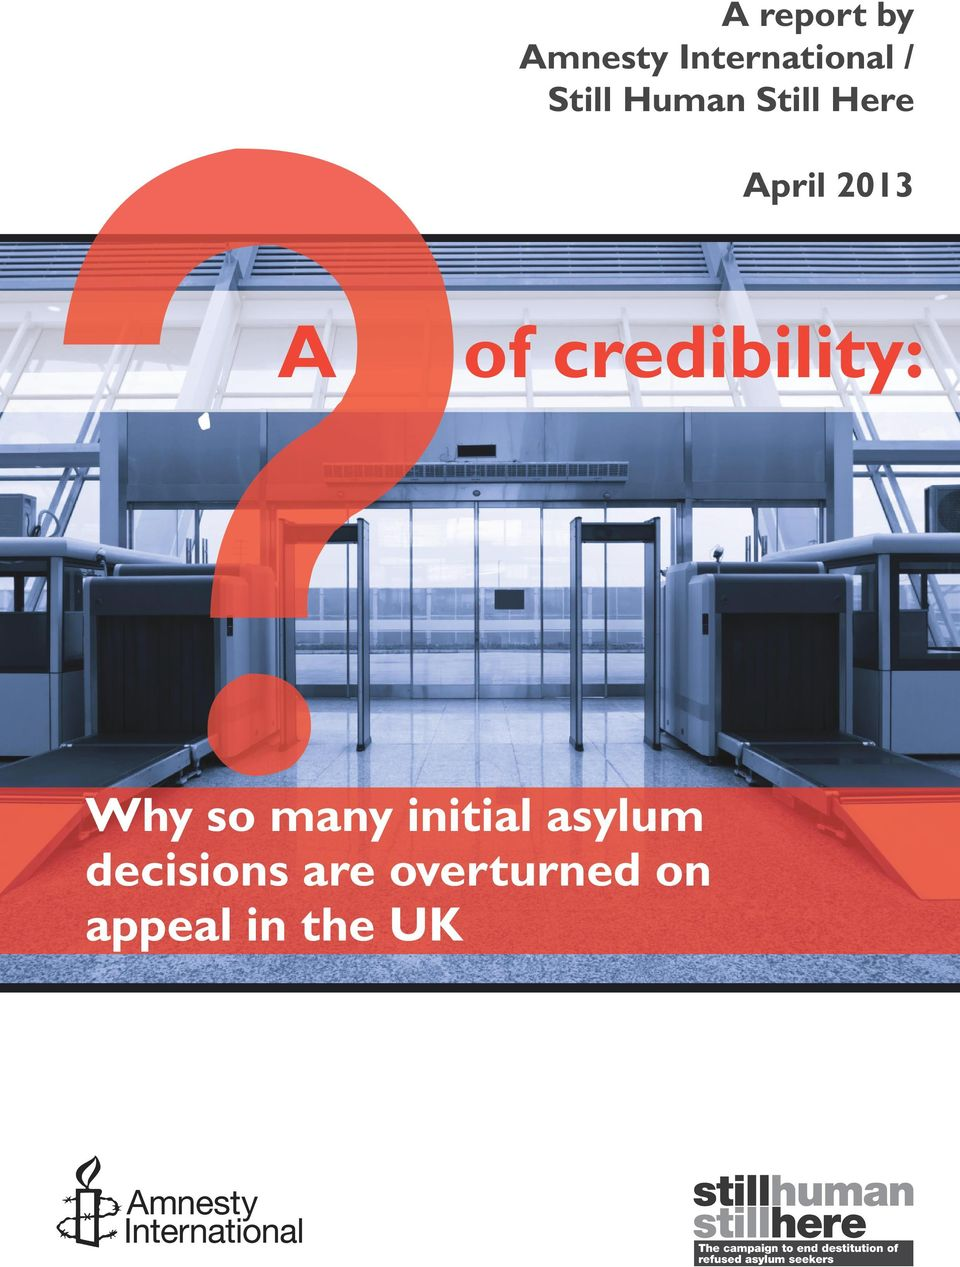 credibility: Why so many initial asylum